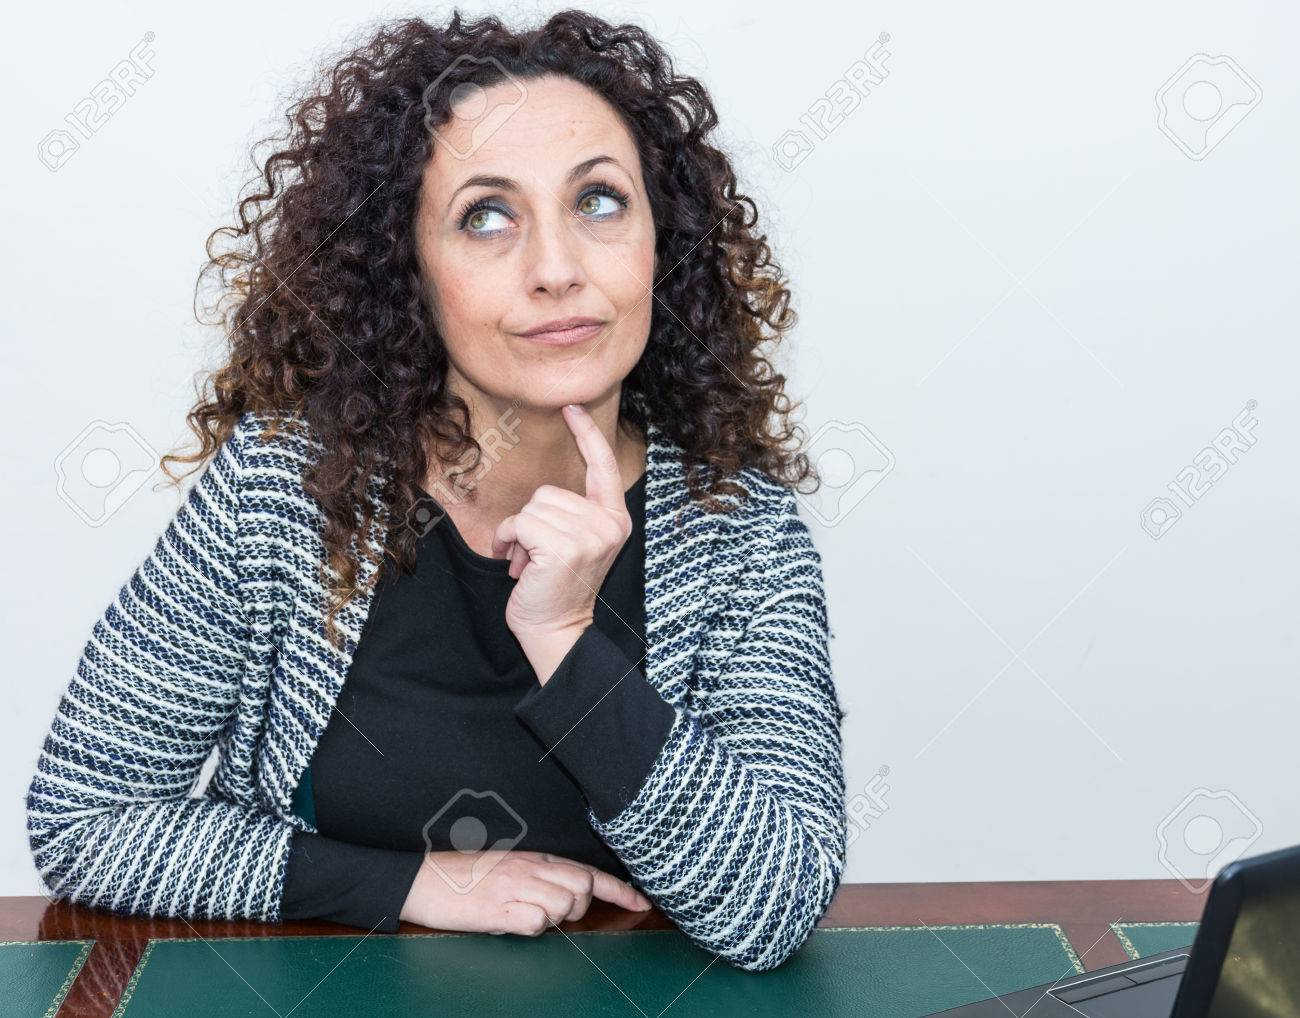 Mature Woman With Pensive Eyes High With Curly Hair And Blacks And